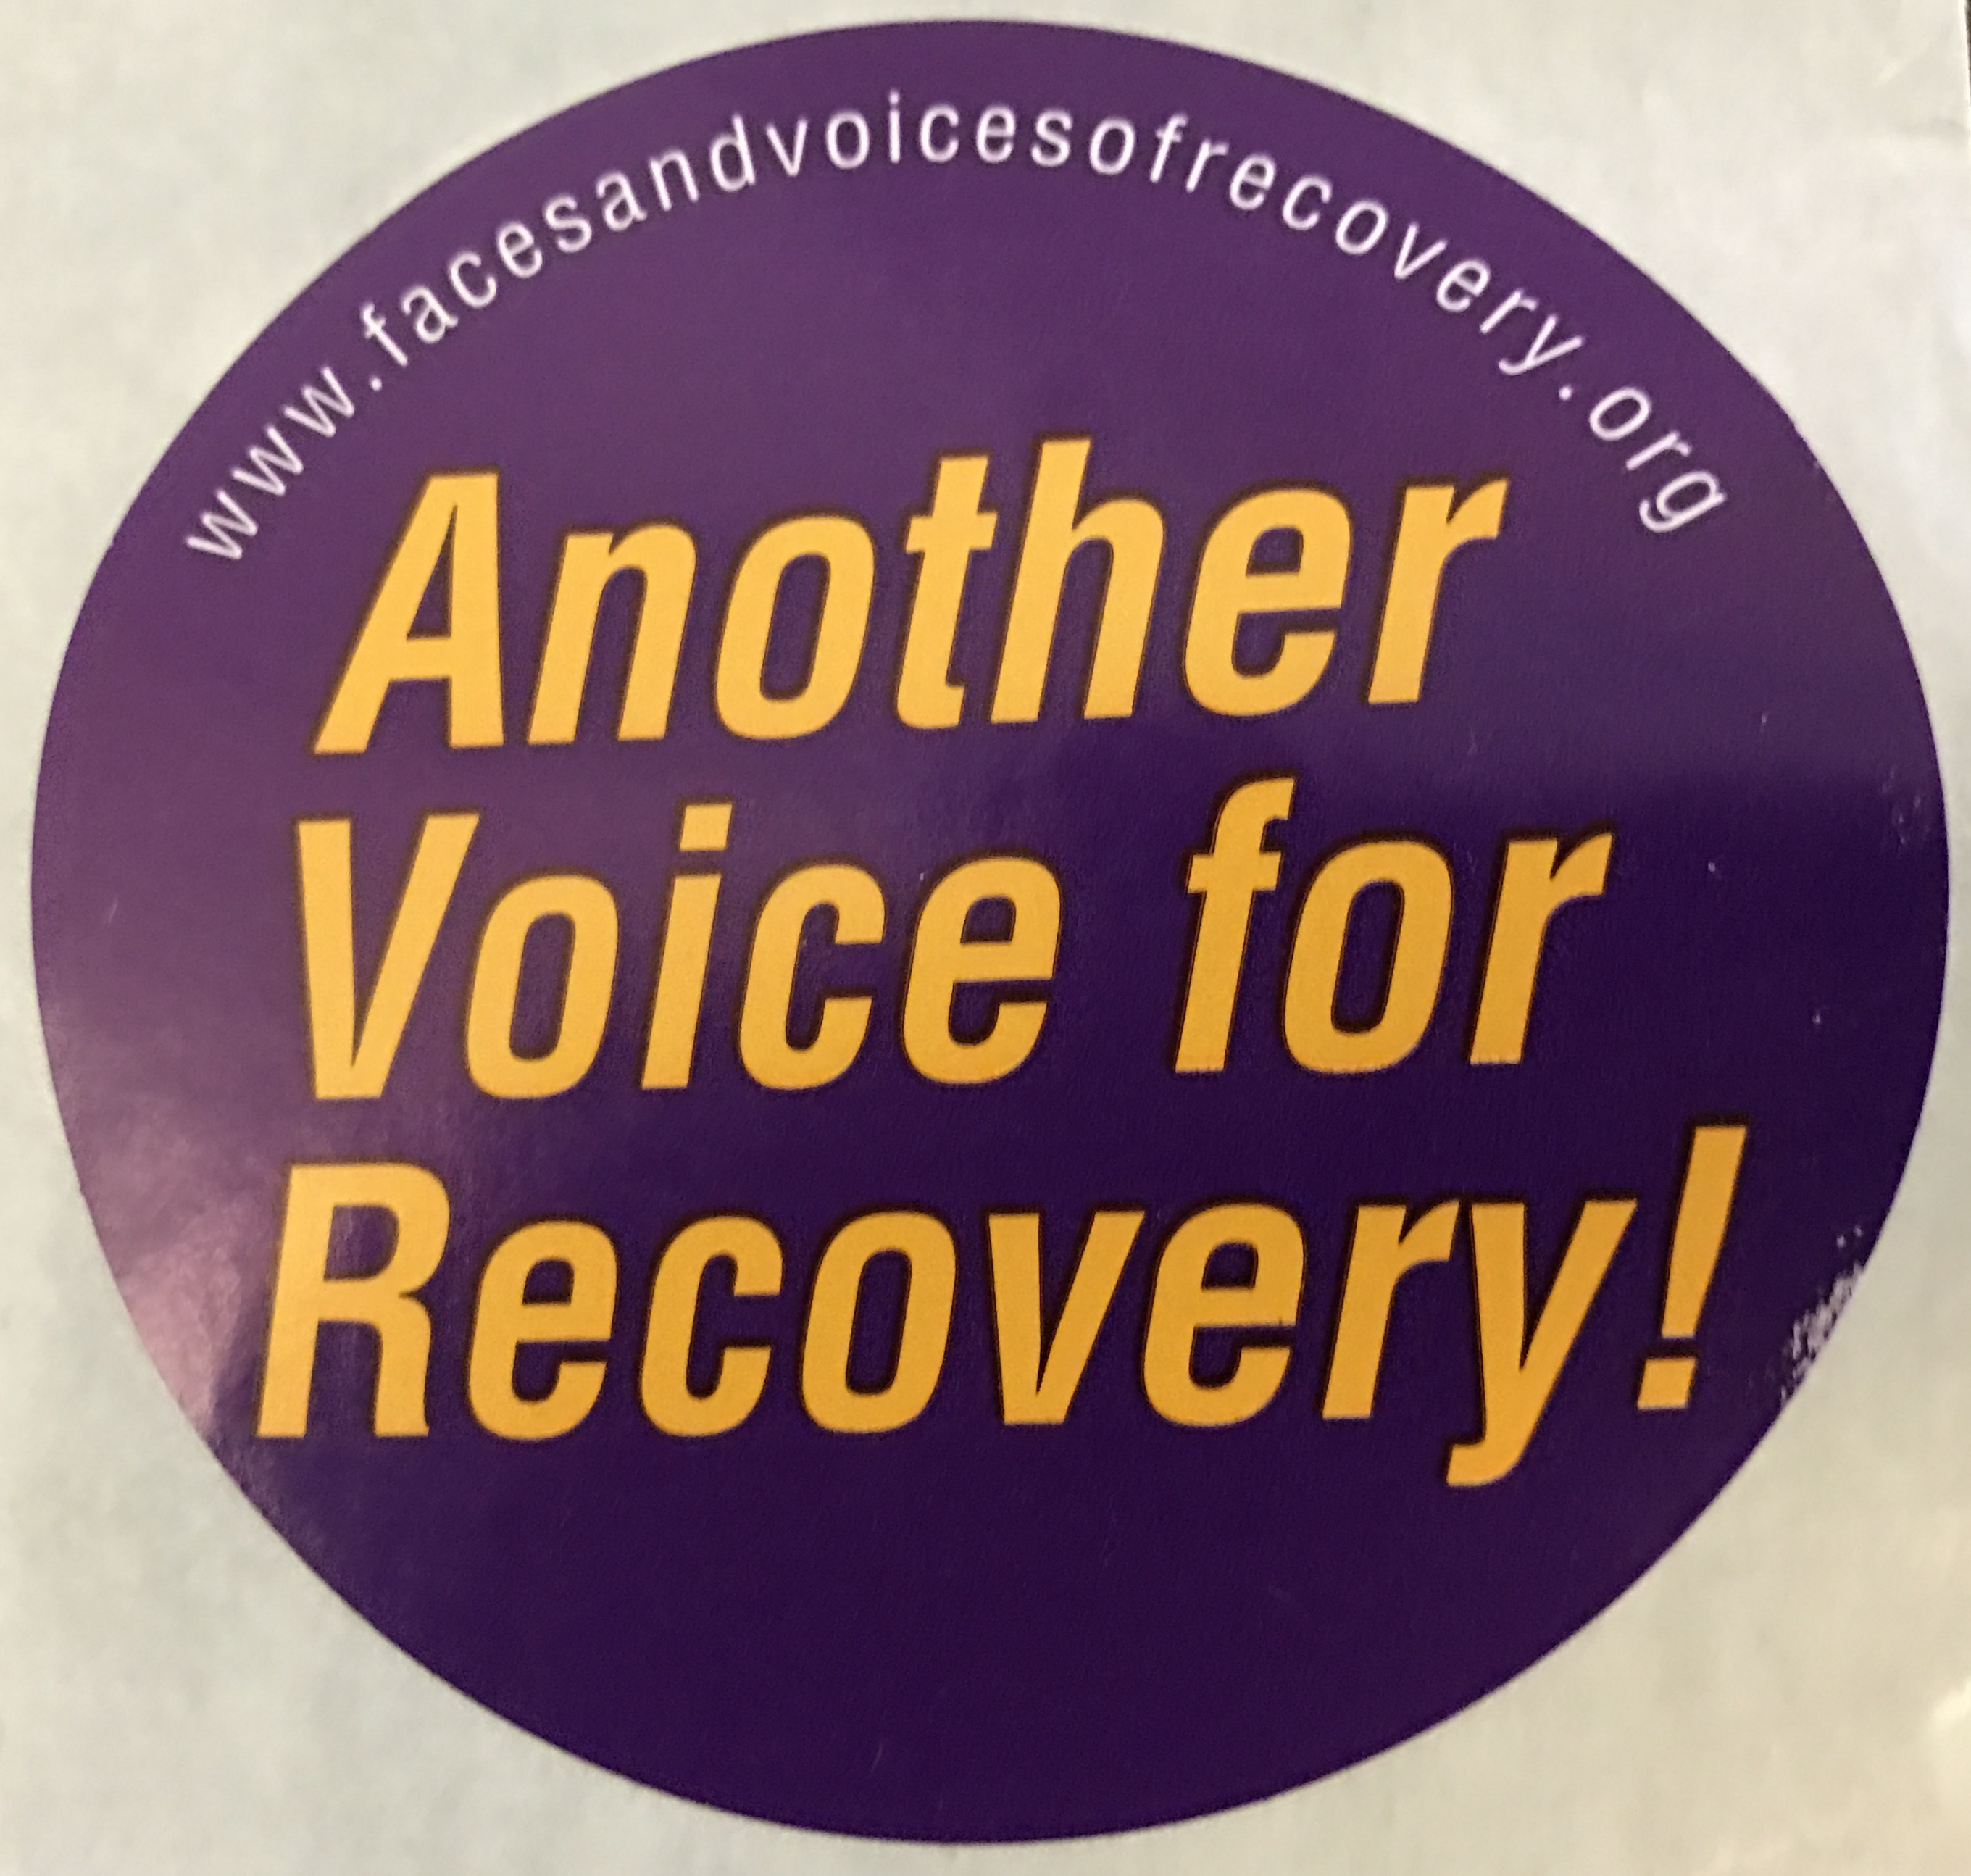 Another Voice for Recovery! Stickers (500 pack)